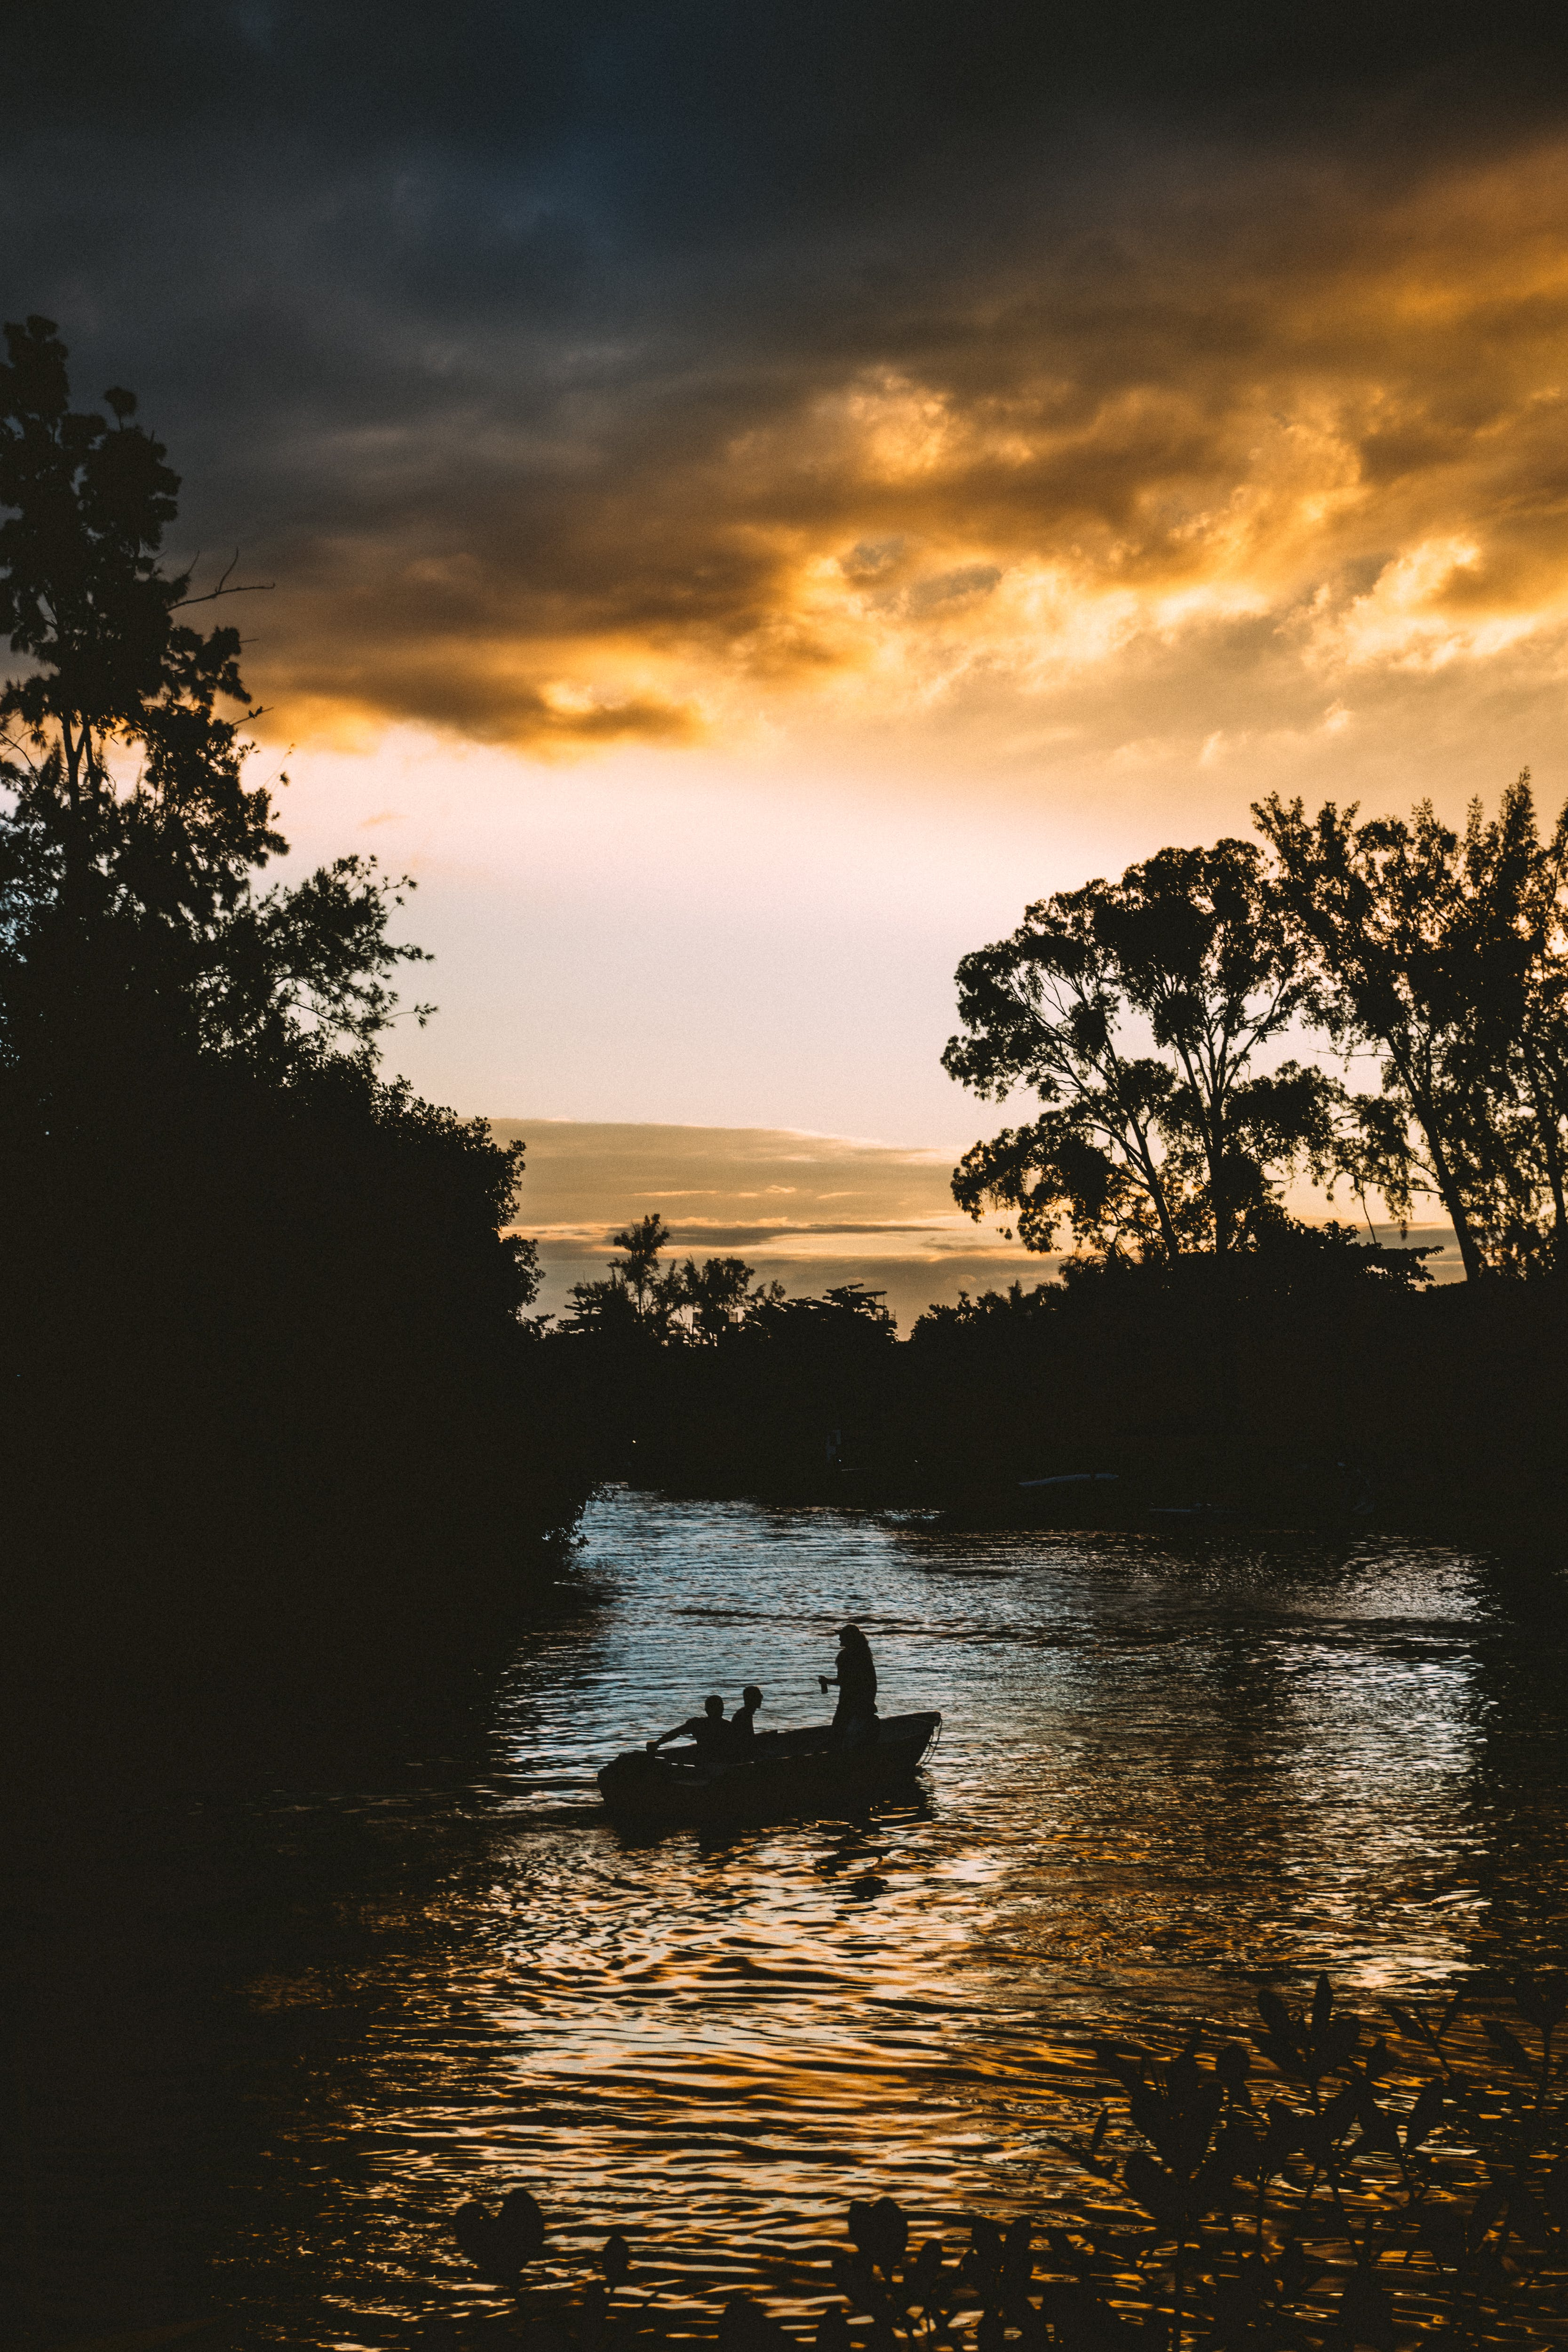 Silhouette of Persons on Boat Near Trees